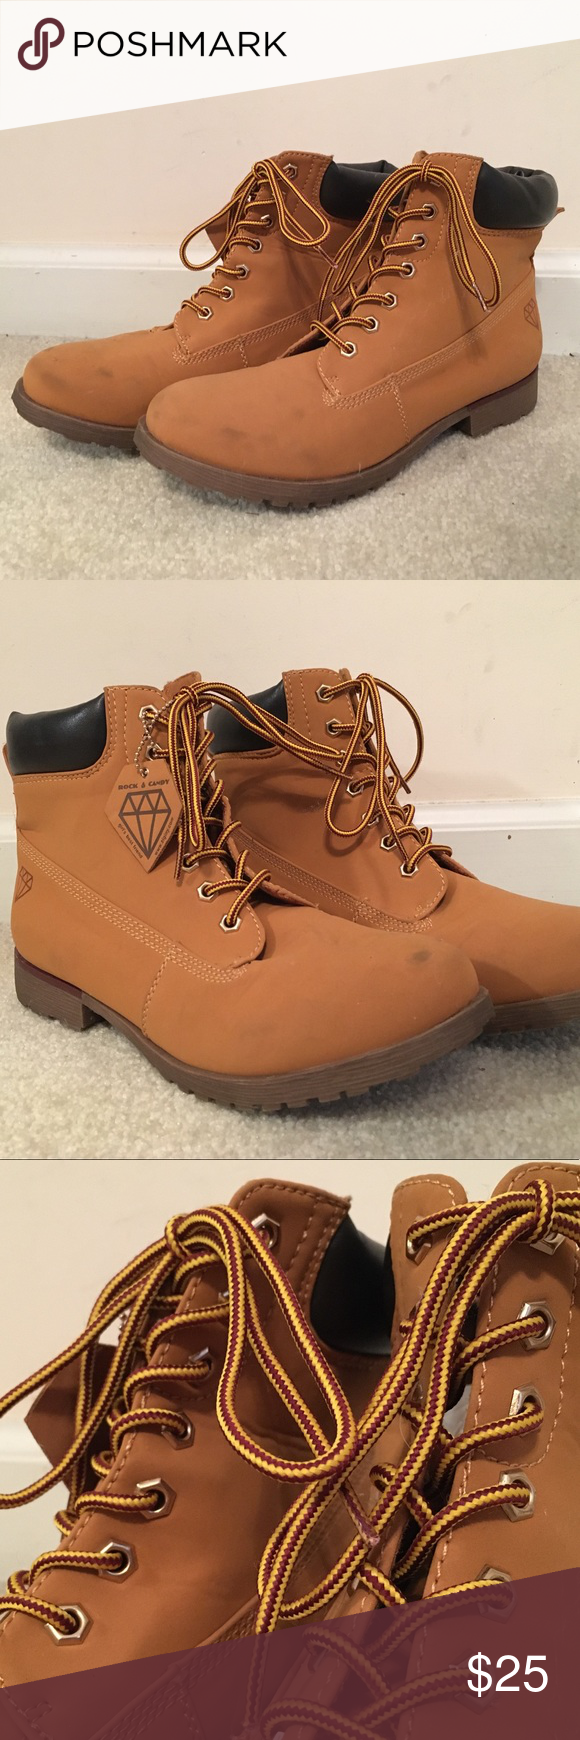 Timberland mock boots Not real